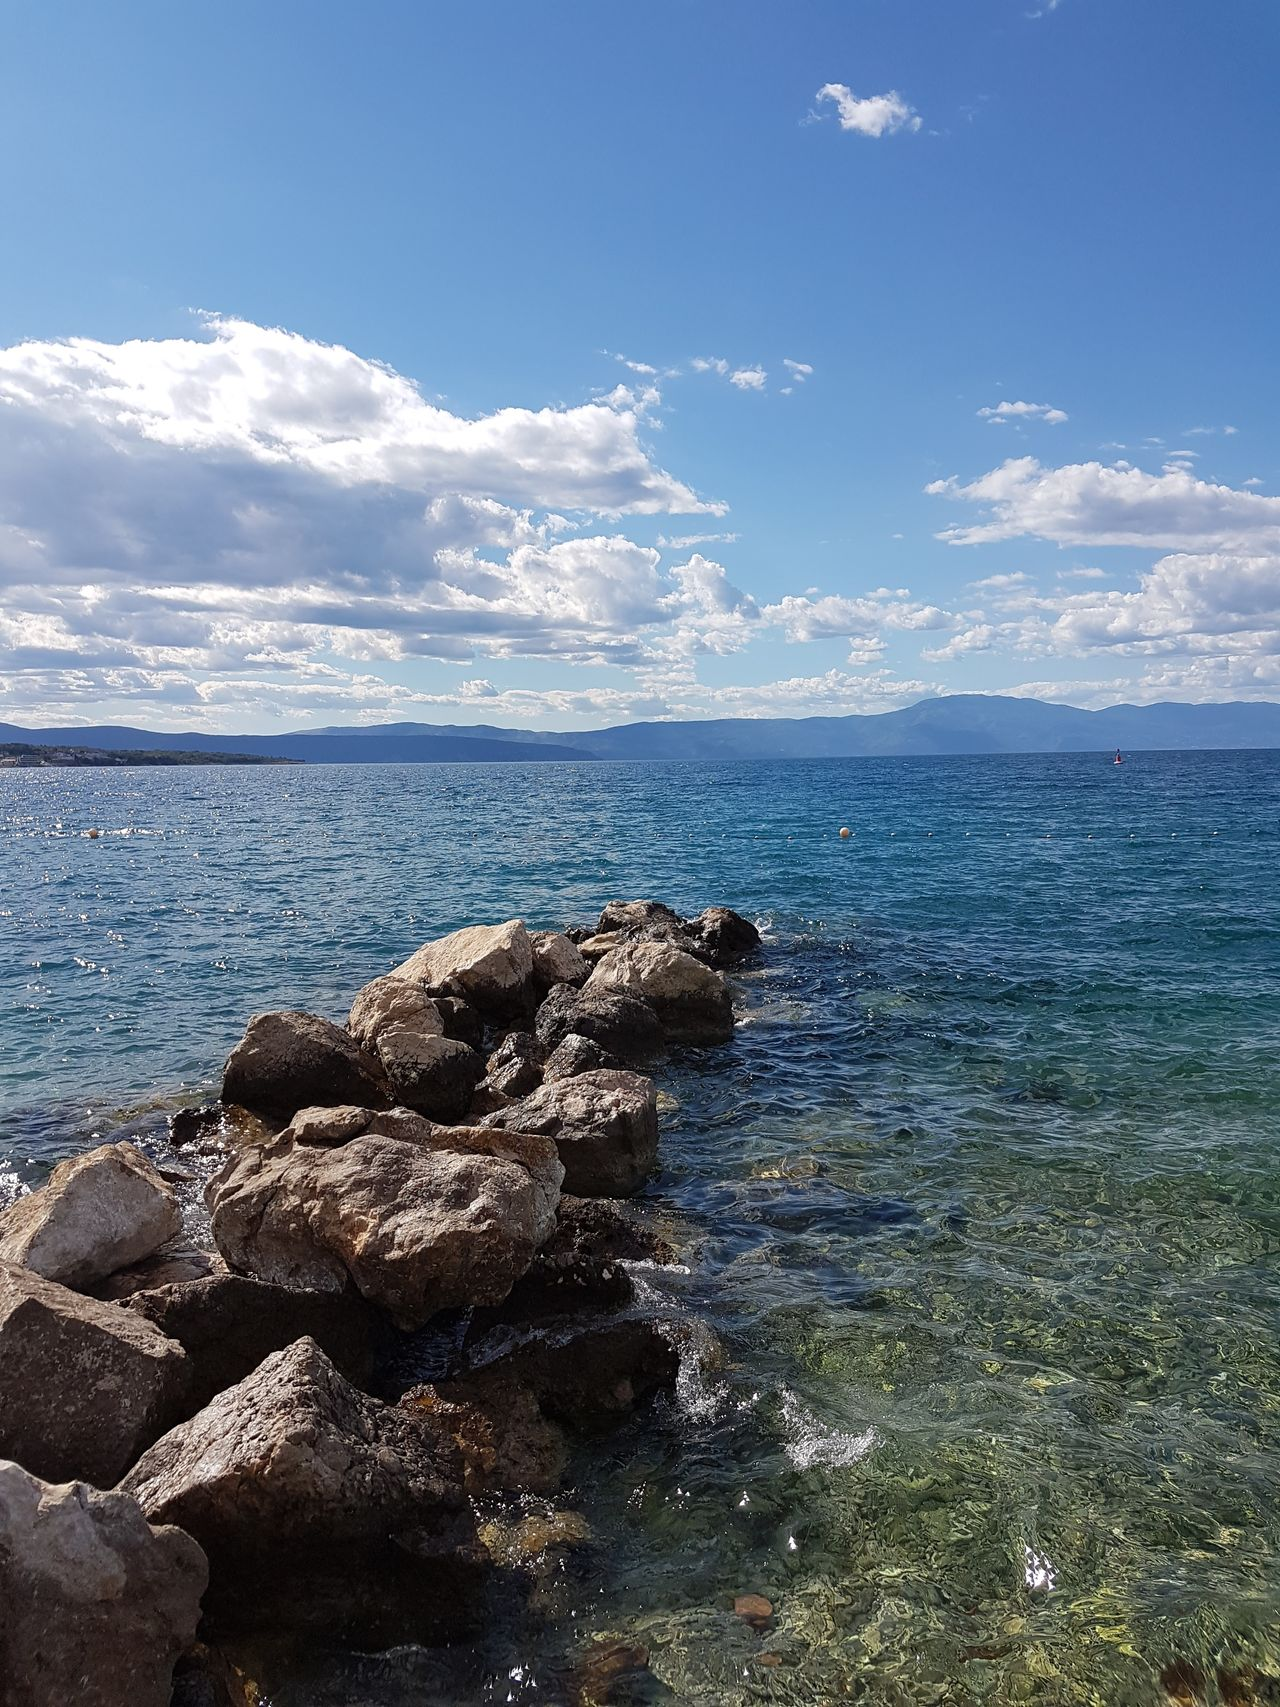 Water Sea Horizon Over Water Sky Sunlight Water Nature No People Outdoors Croatia Adriatic Coast Beach Day Beauty In Nature Animals In The Wild Animal Themes Representing Sea Life